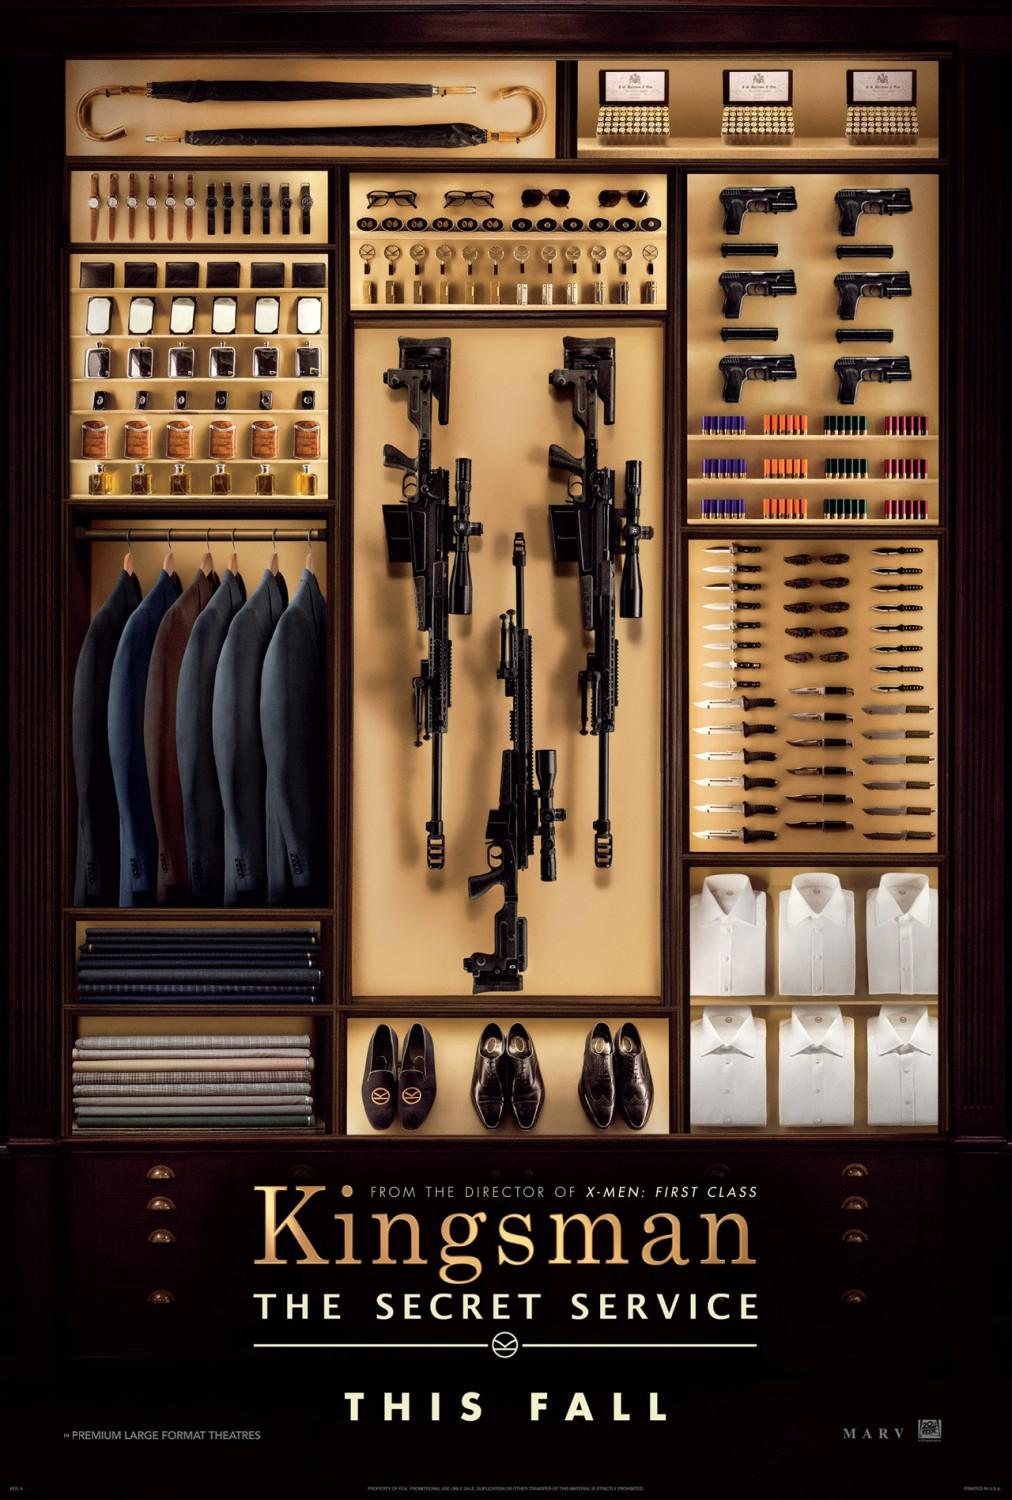 Kingsman 1 - the Secret Service - guns poster  - wardrobe